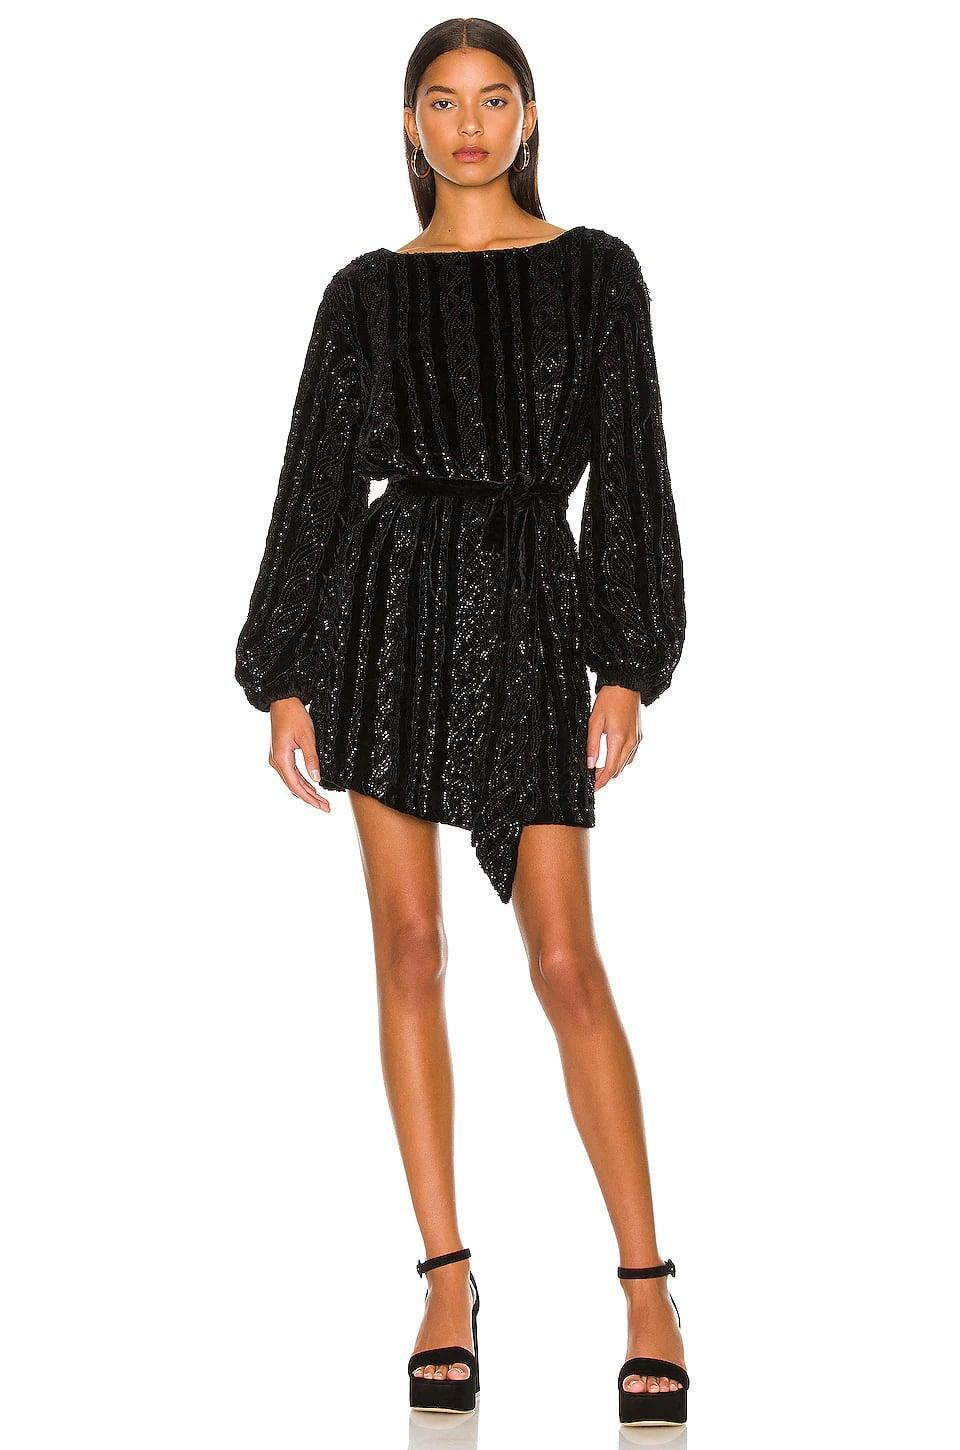 <p>If you're ready to have some fun, this <span>Retrofete Grace Dress</span> ($795) is the dress for that. It's sparkly but still versatile enough to go to lots of different kinds of events.</p>